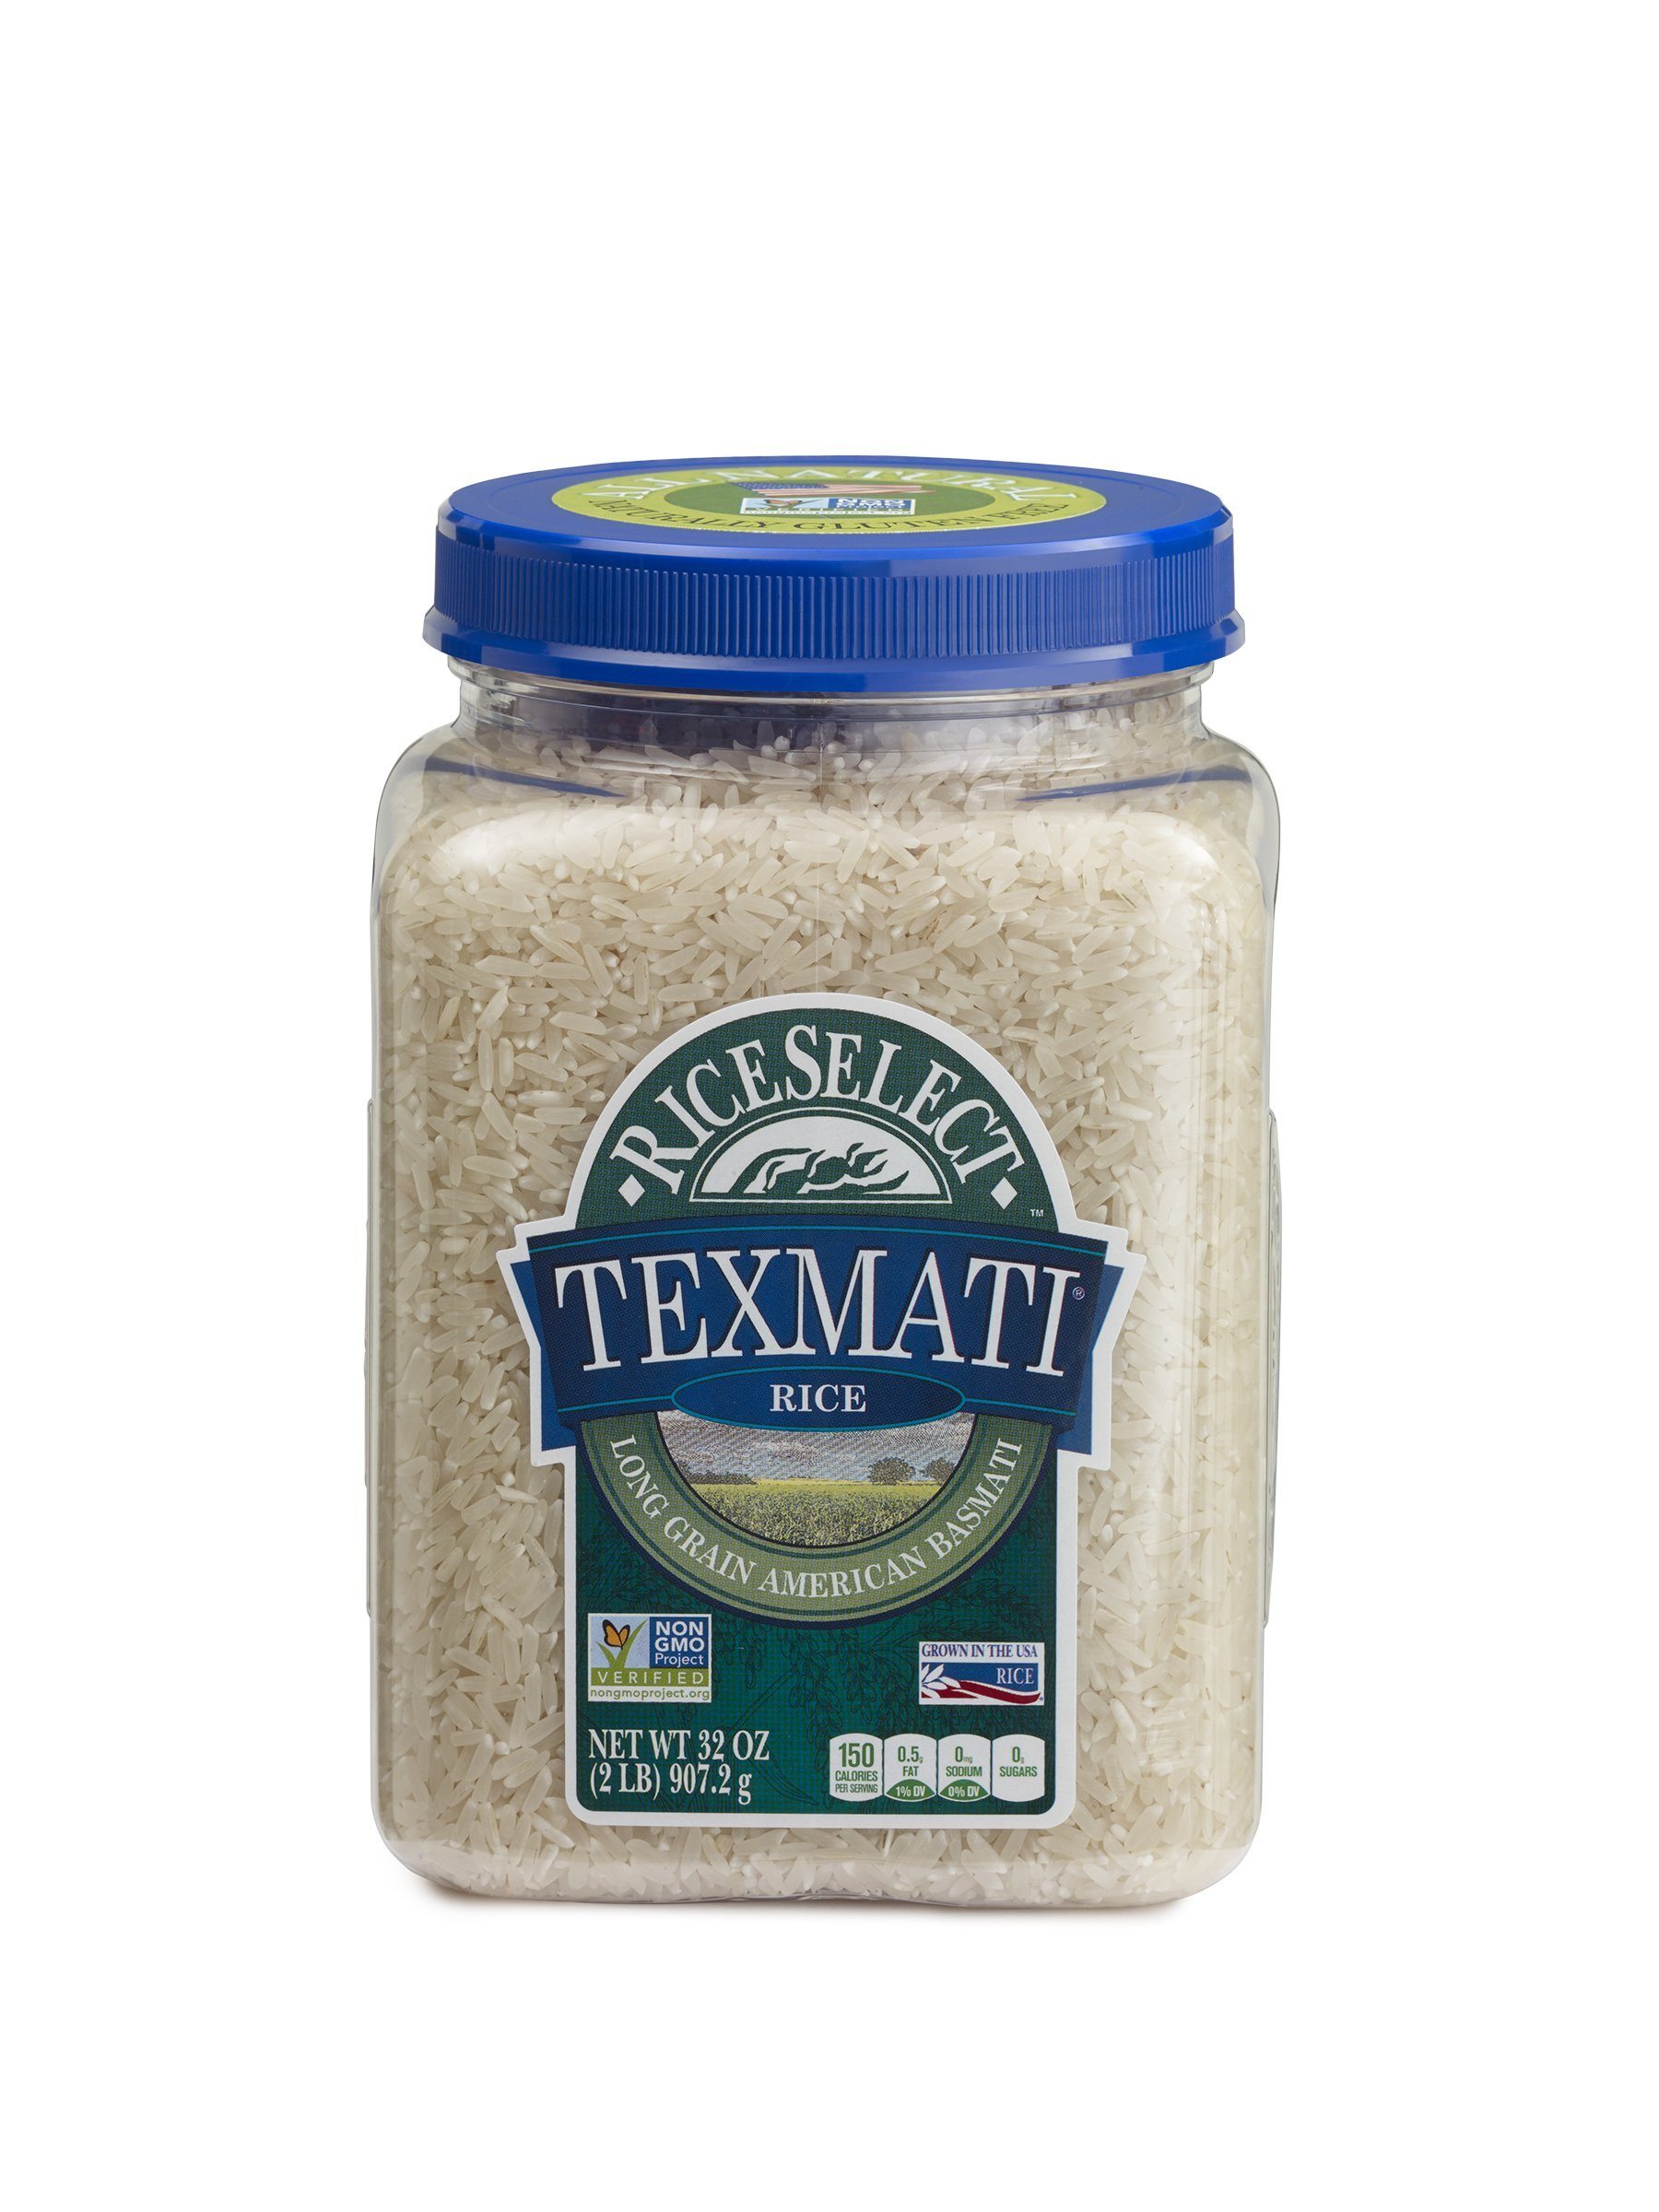 RiceSelect Texmati Rice, Basmati, White, 32-Ounce (Pack of 4)